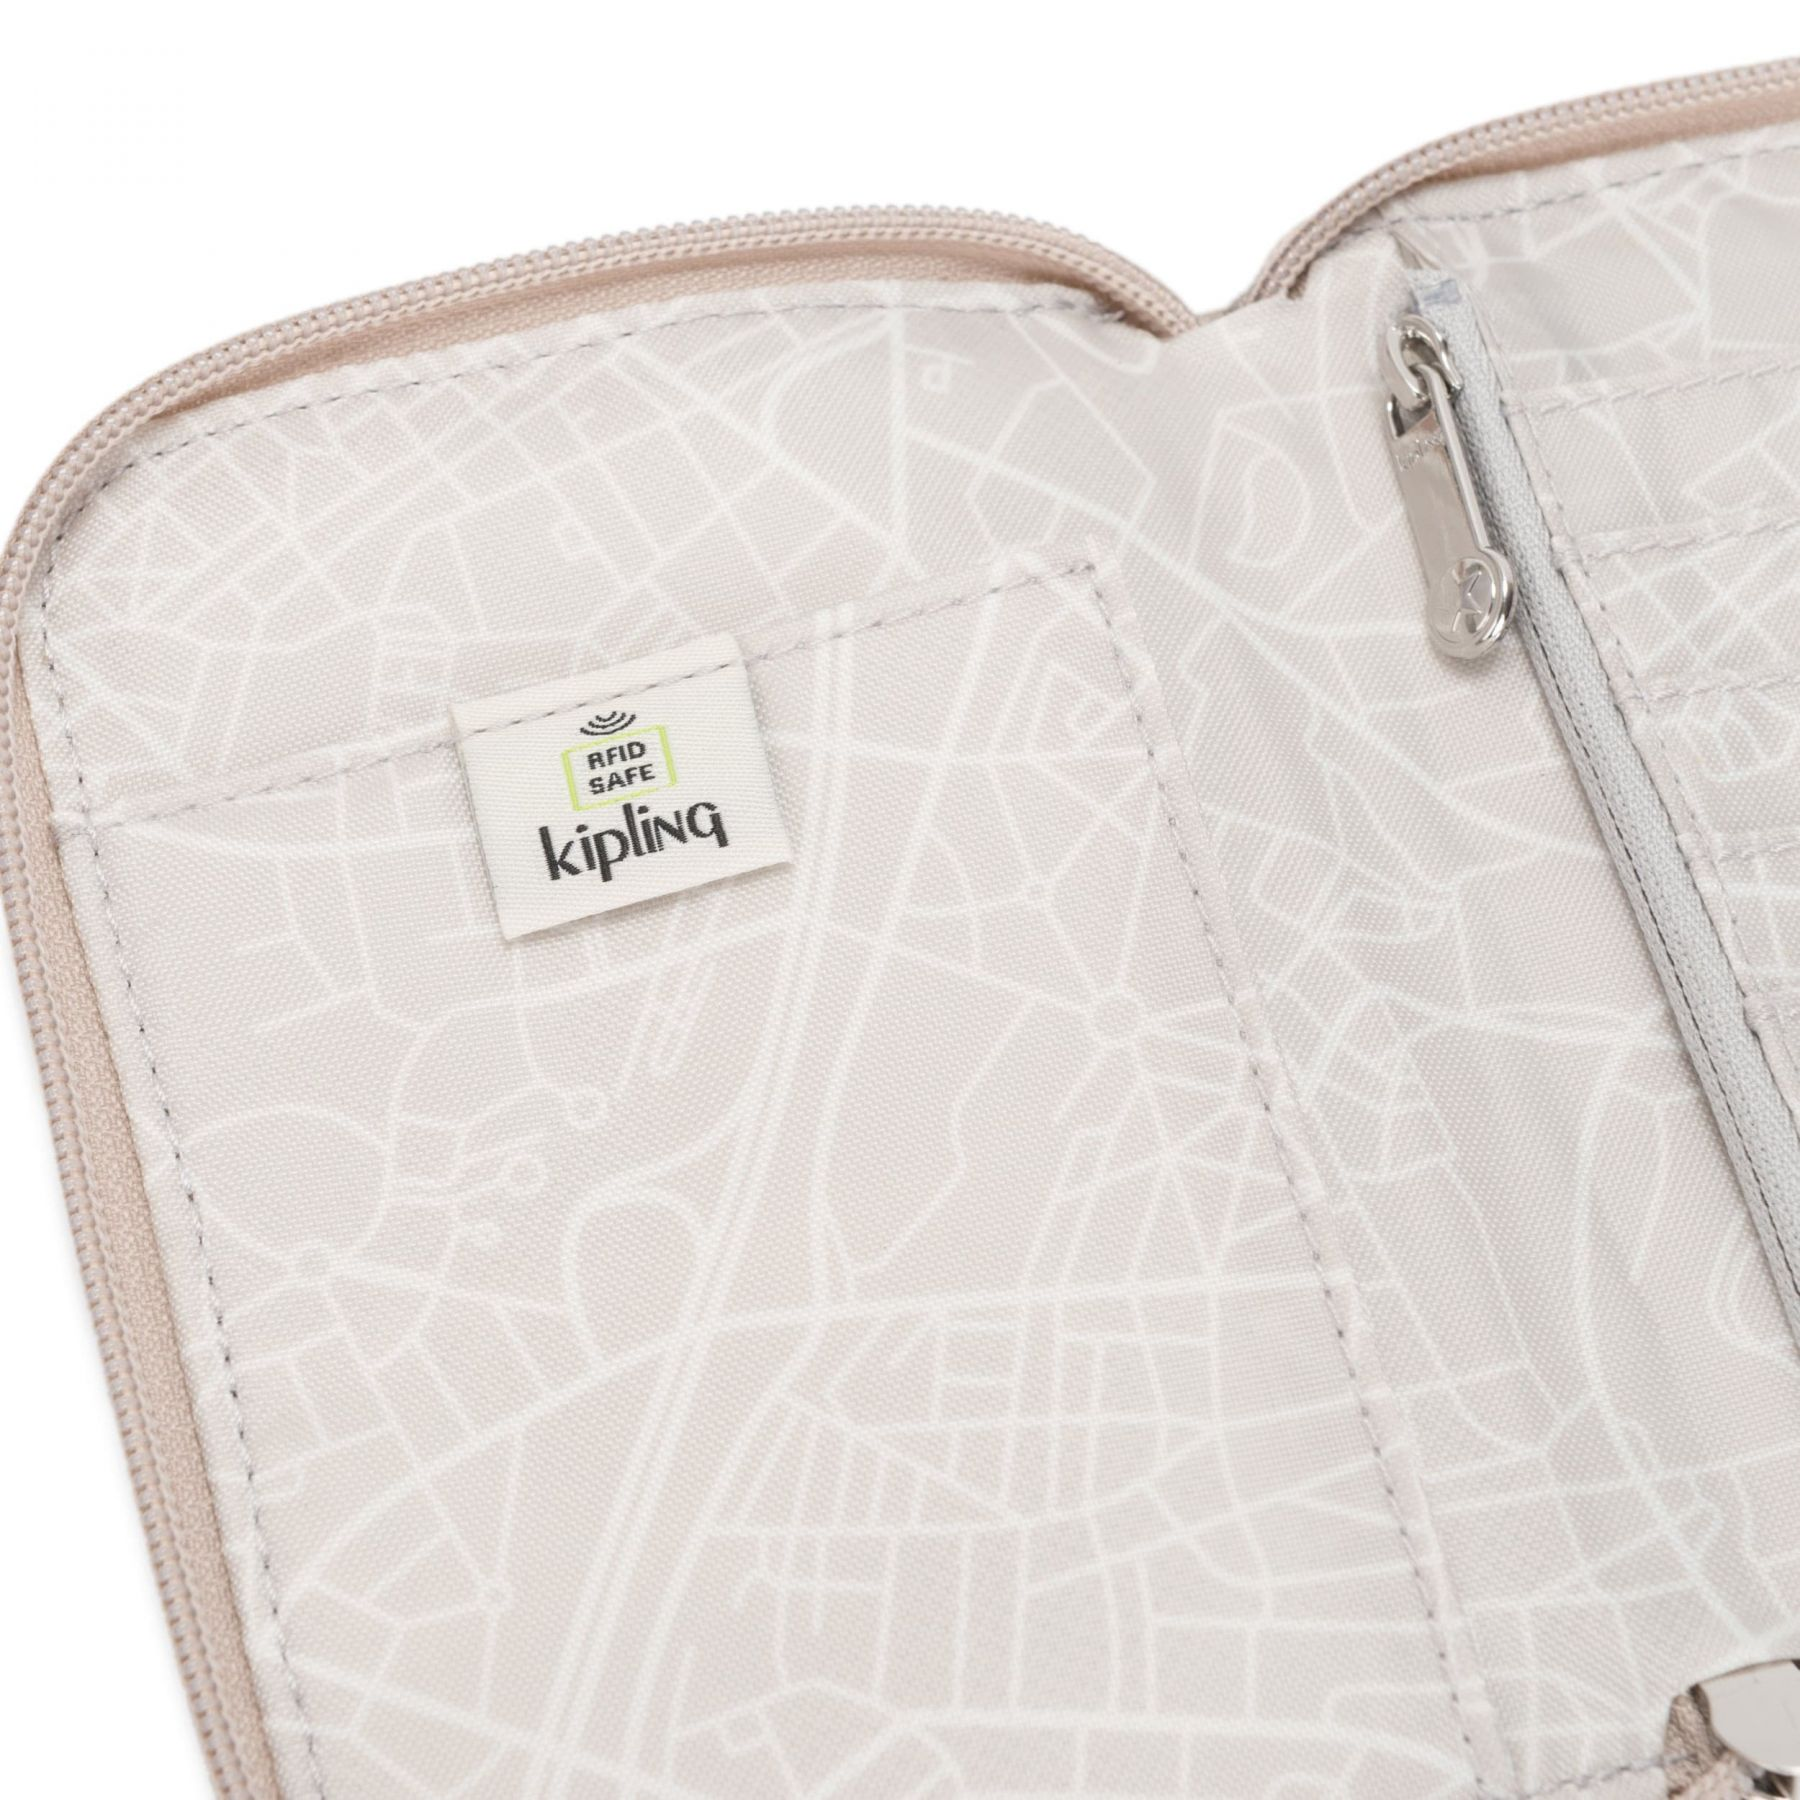 TRAVEL DOC S Latest Luggage by Kipling - view 5